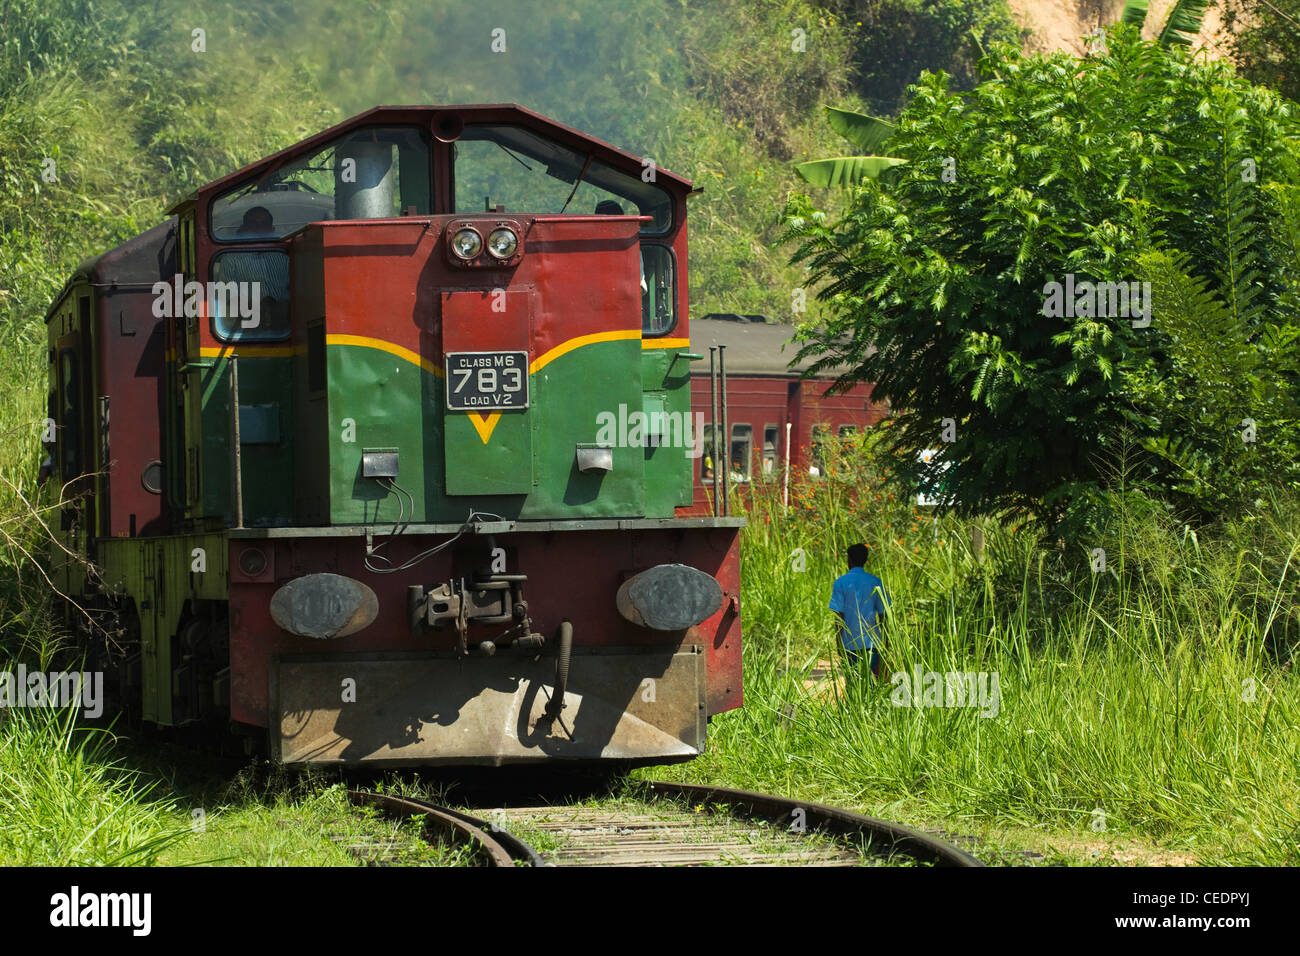 The Badulla to Colombo train, a scenic ride through the Central Highlands with it's mountains & tea plantations; Stock Photo